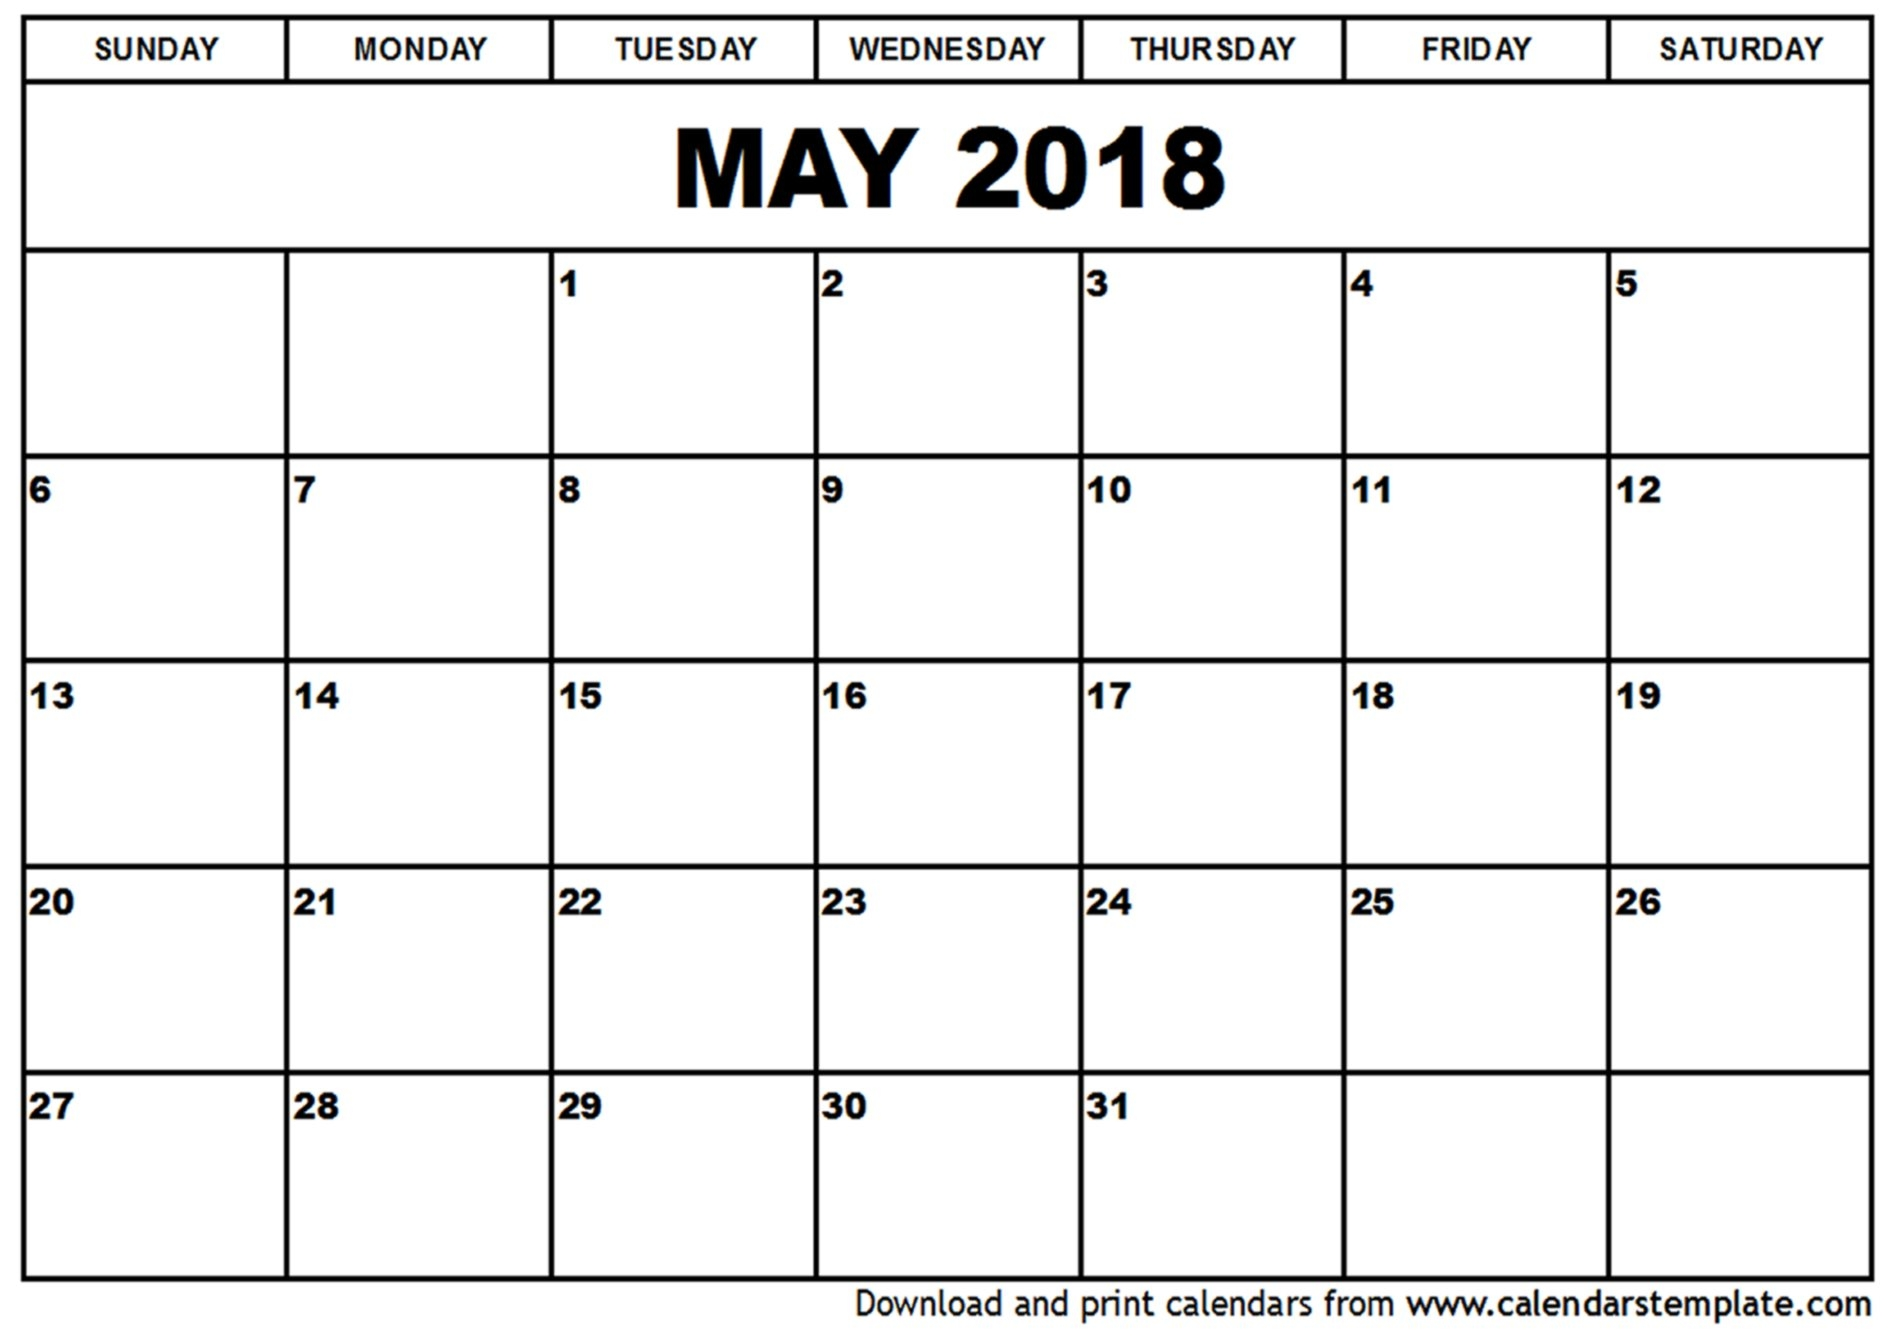 May 2018 Calendar Cute Calendar Template Word